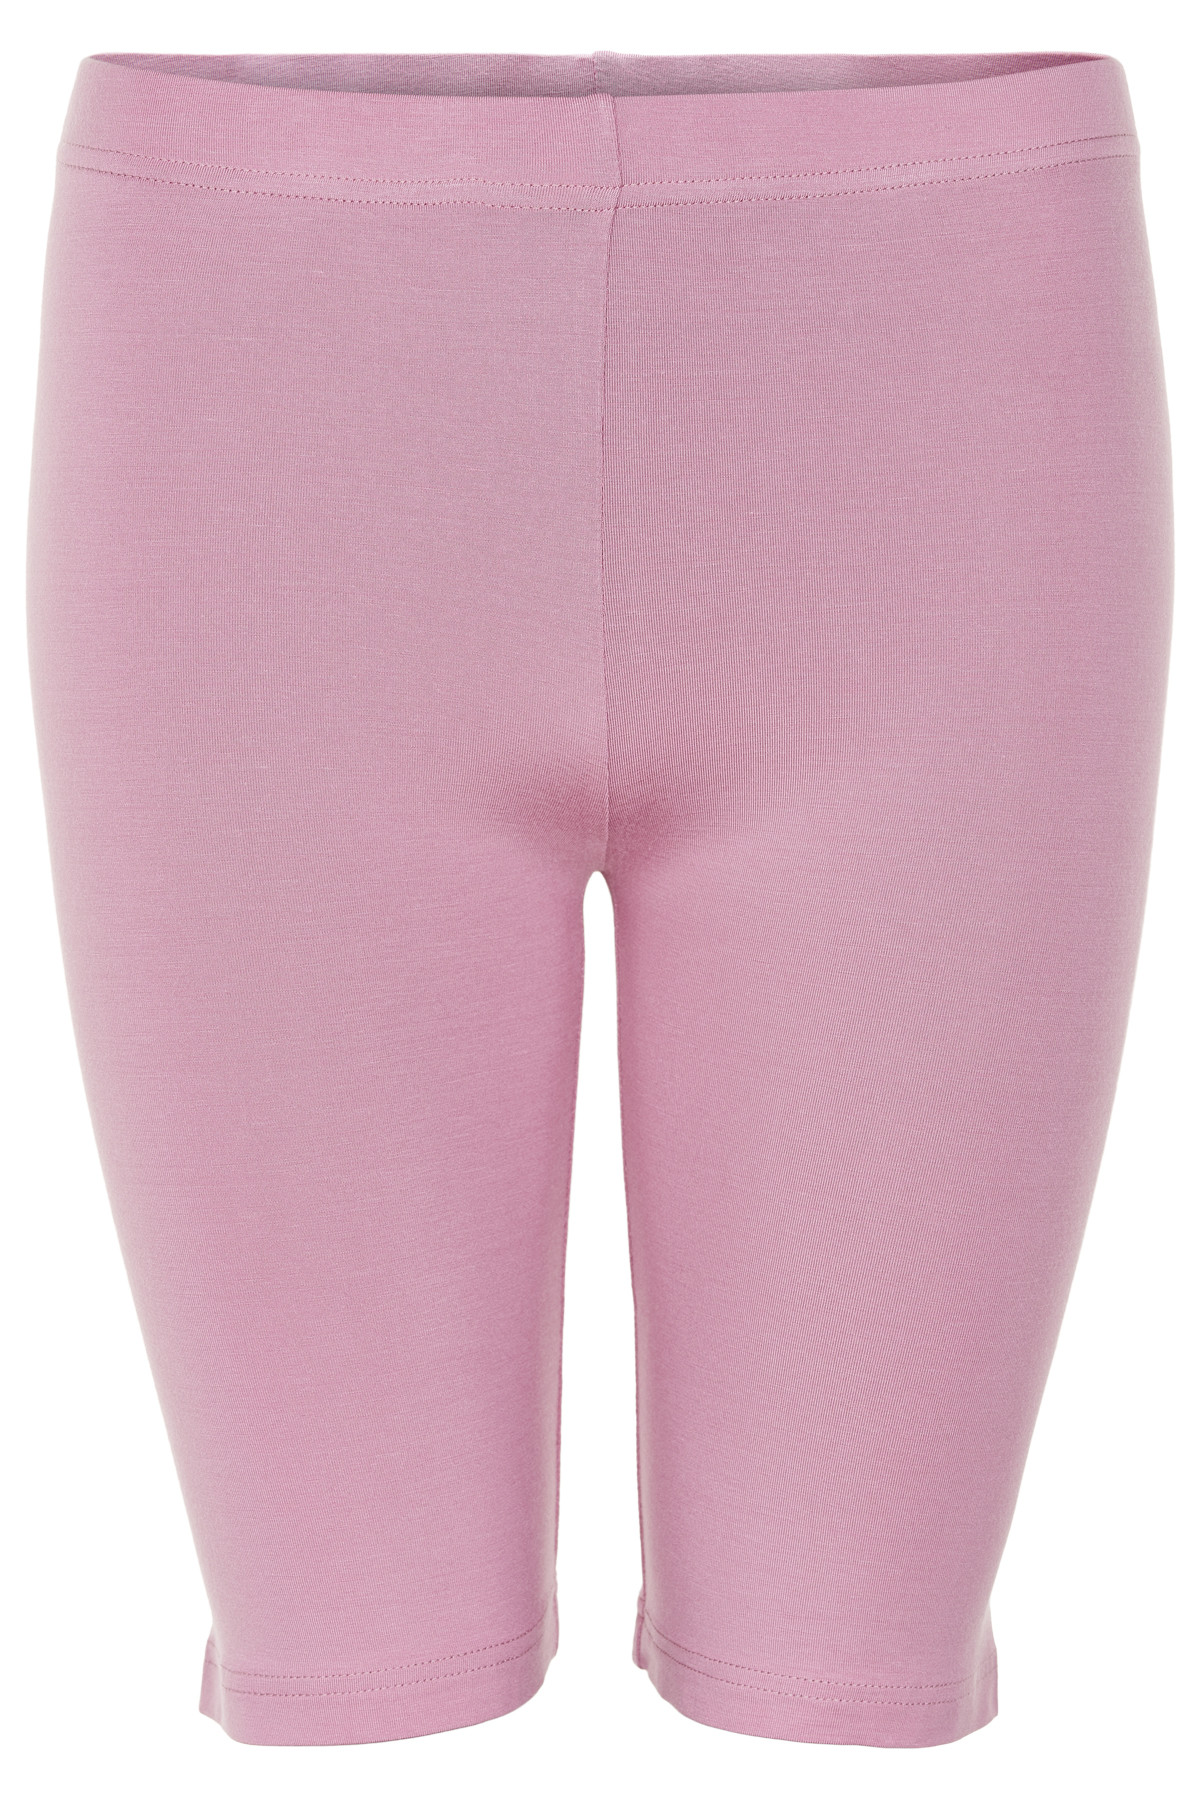 NOA NOA LEGGINGS 1-9349-1 00933 (Rose, XXS)